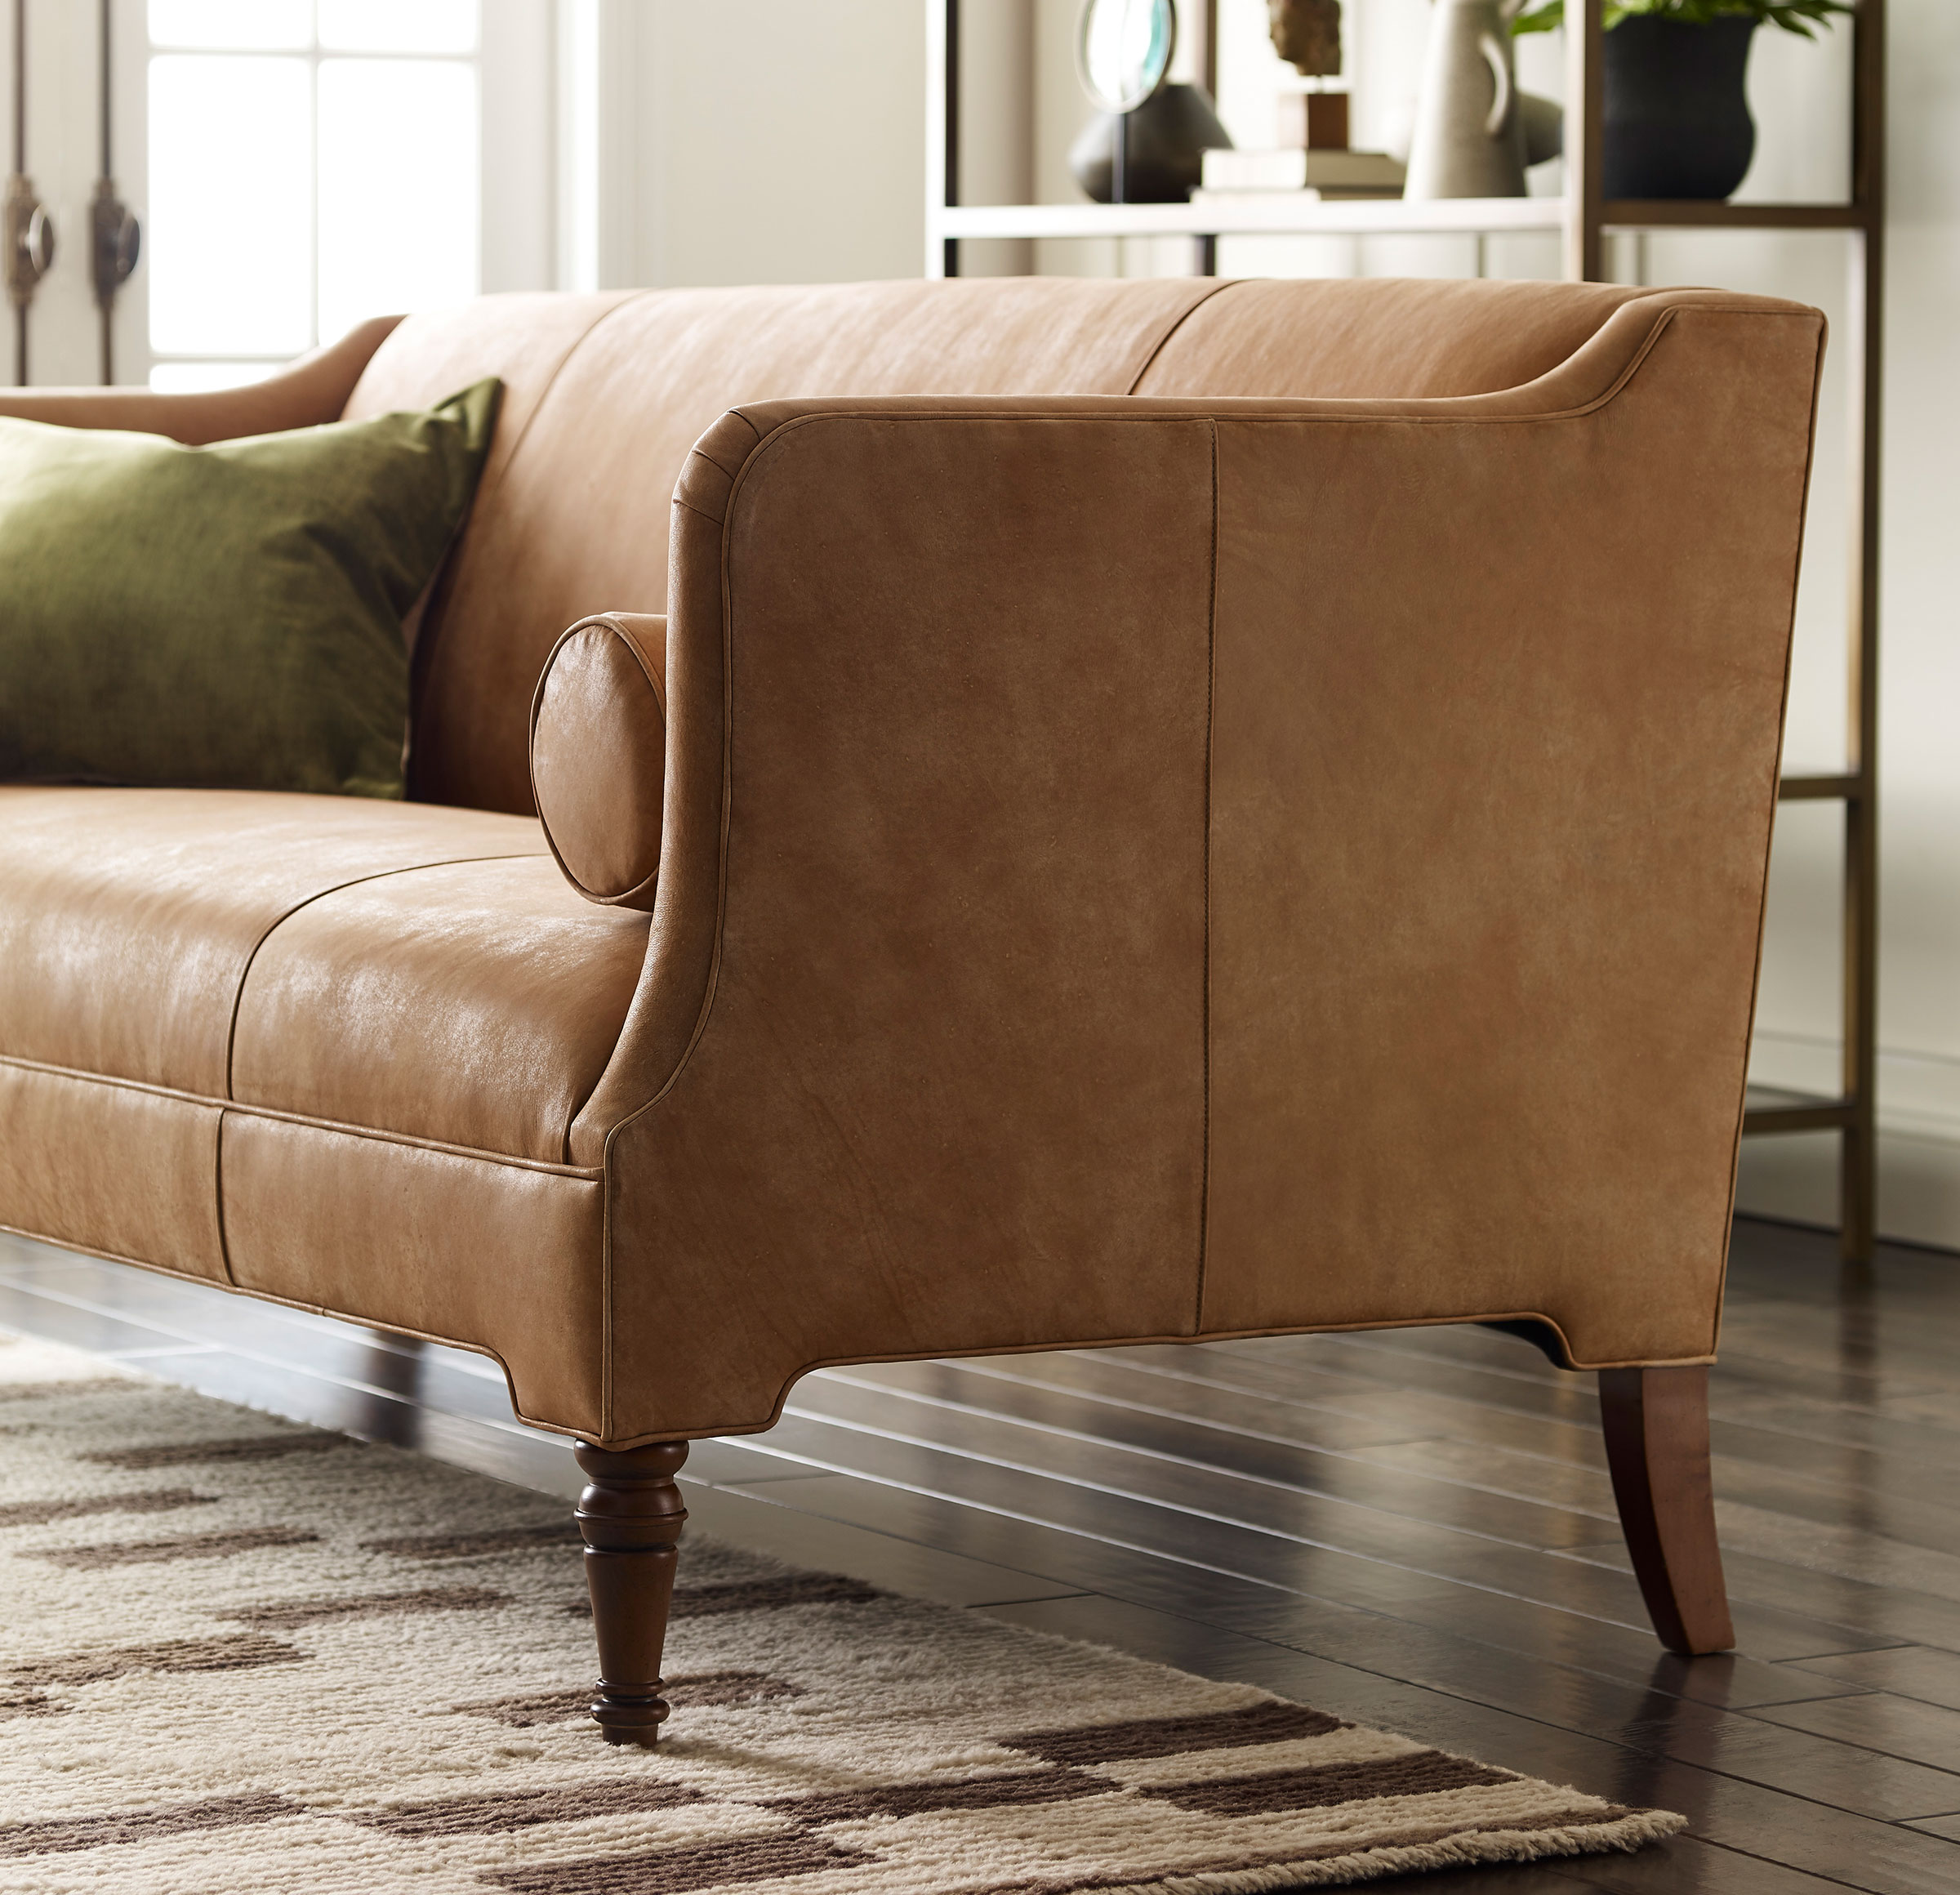 BENNETT LEATHER SOFA, MOAB - DESERT, hi-res